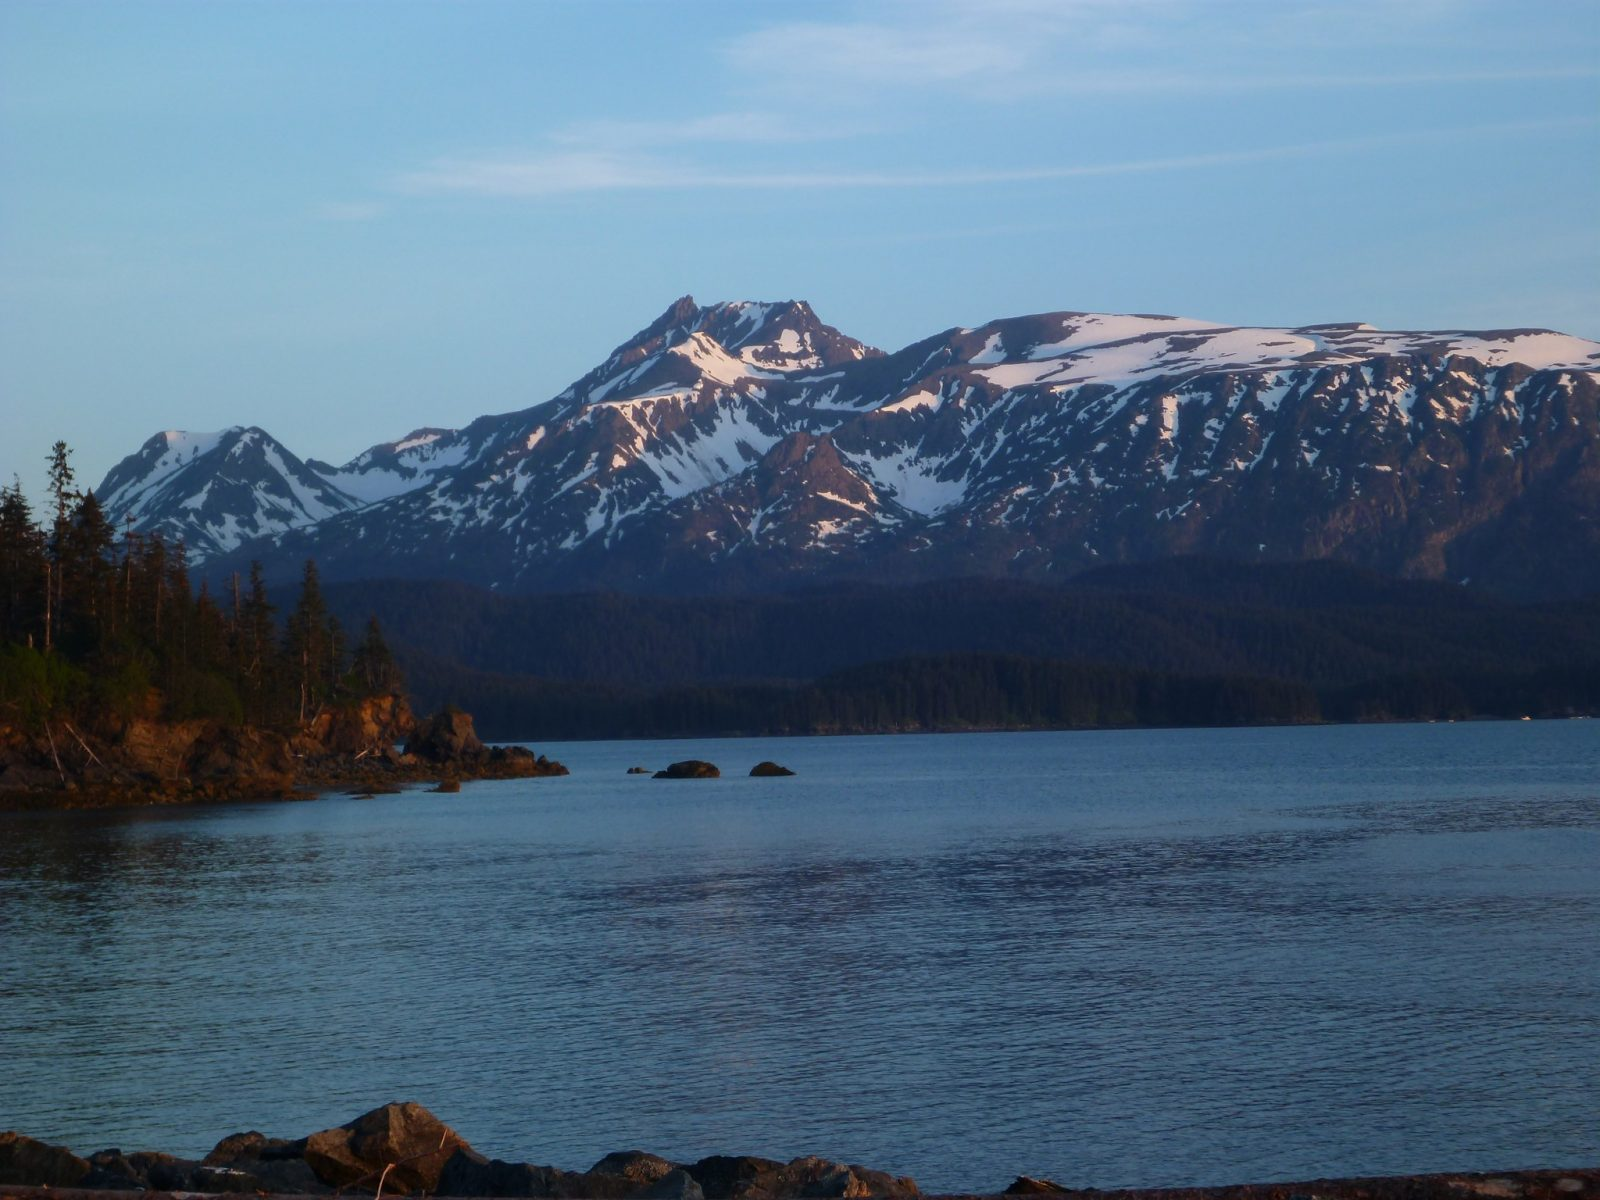 Camping in Alaska in Kachemak Bay State Park. A high mountain with some snow rises above a protected bay surrounded by evergreen trees. It's late evening and teh sun is about to set